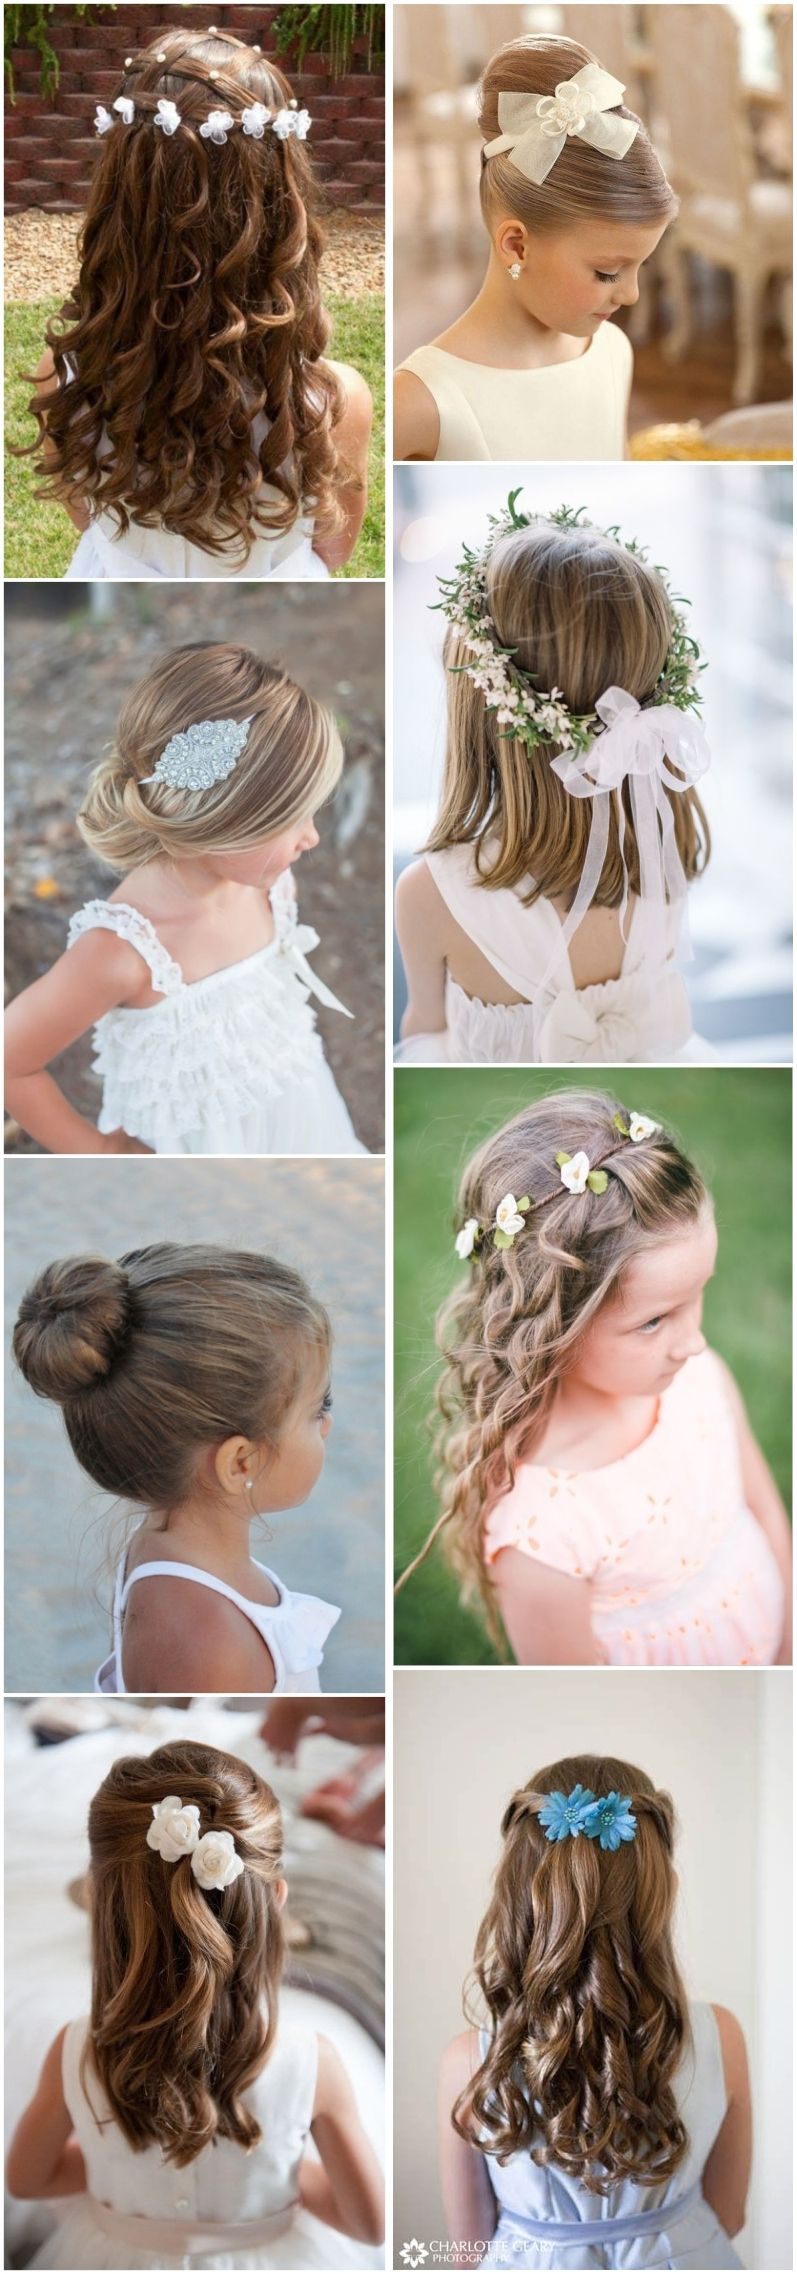 super cute little girl hairstyles for wedding girls pinterest